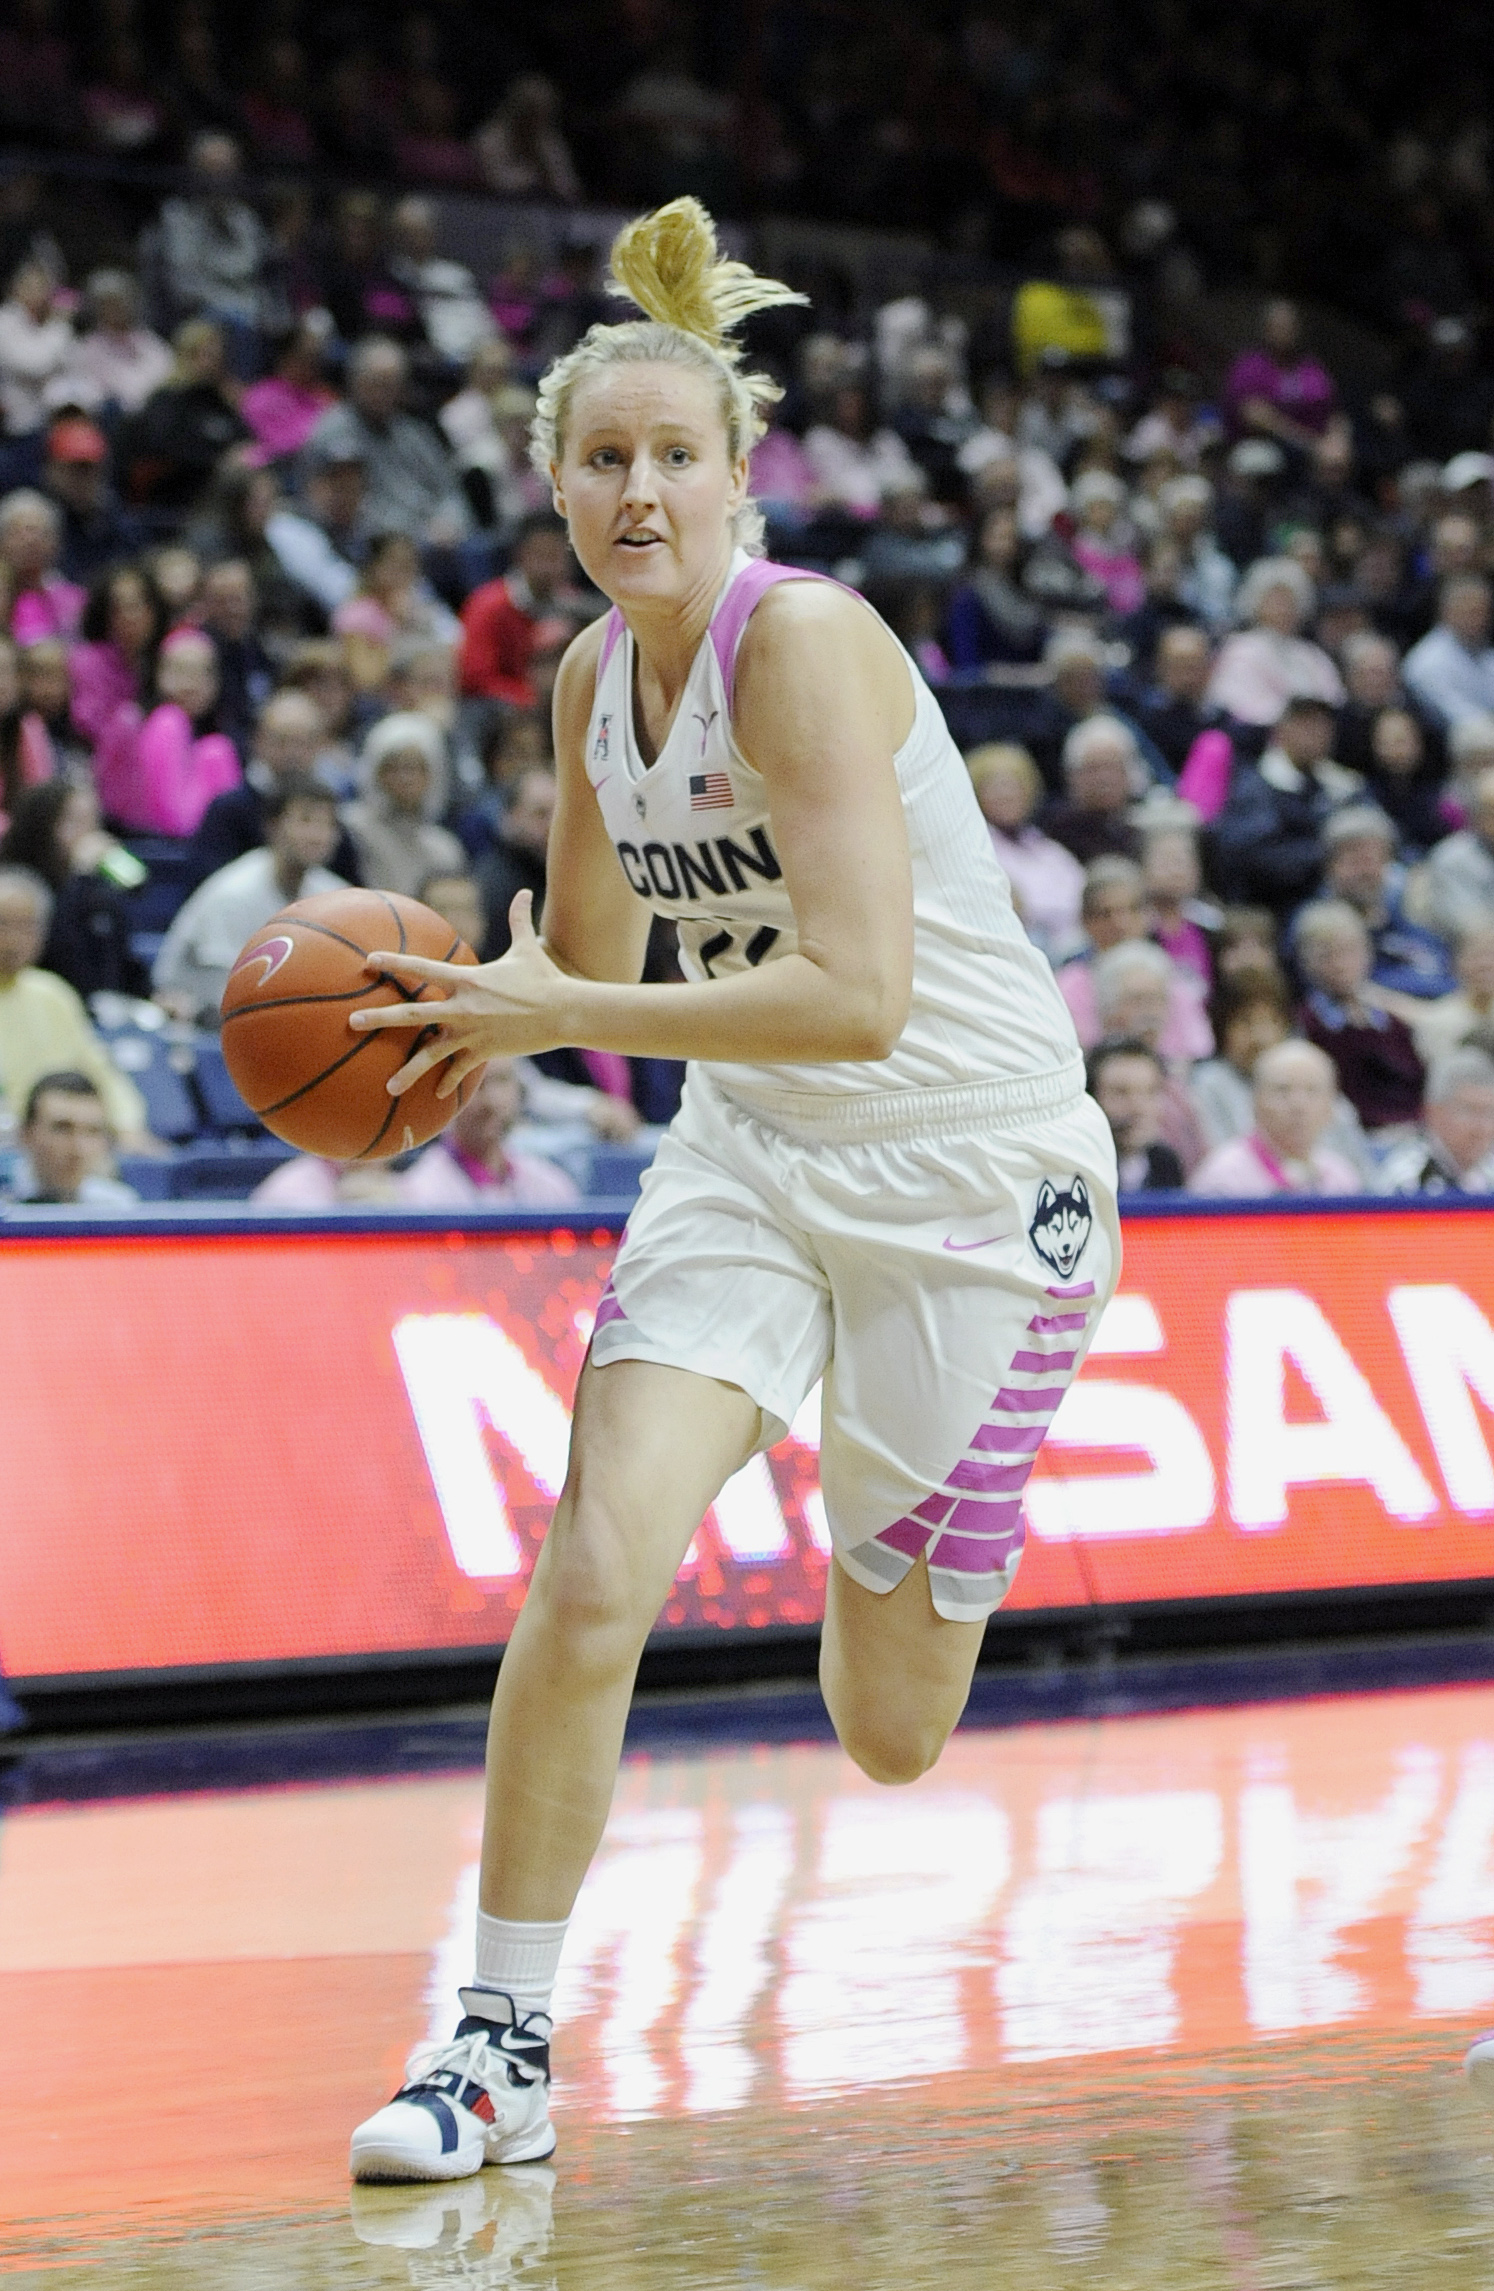 Connecticut's Courtney Ekmark in the second half of an NCAA college basketball game, Wednesday, Feb. 17, 2016, in Storrs, Conn. UConn won 88-34. (AP Photo/Jessica Hill)